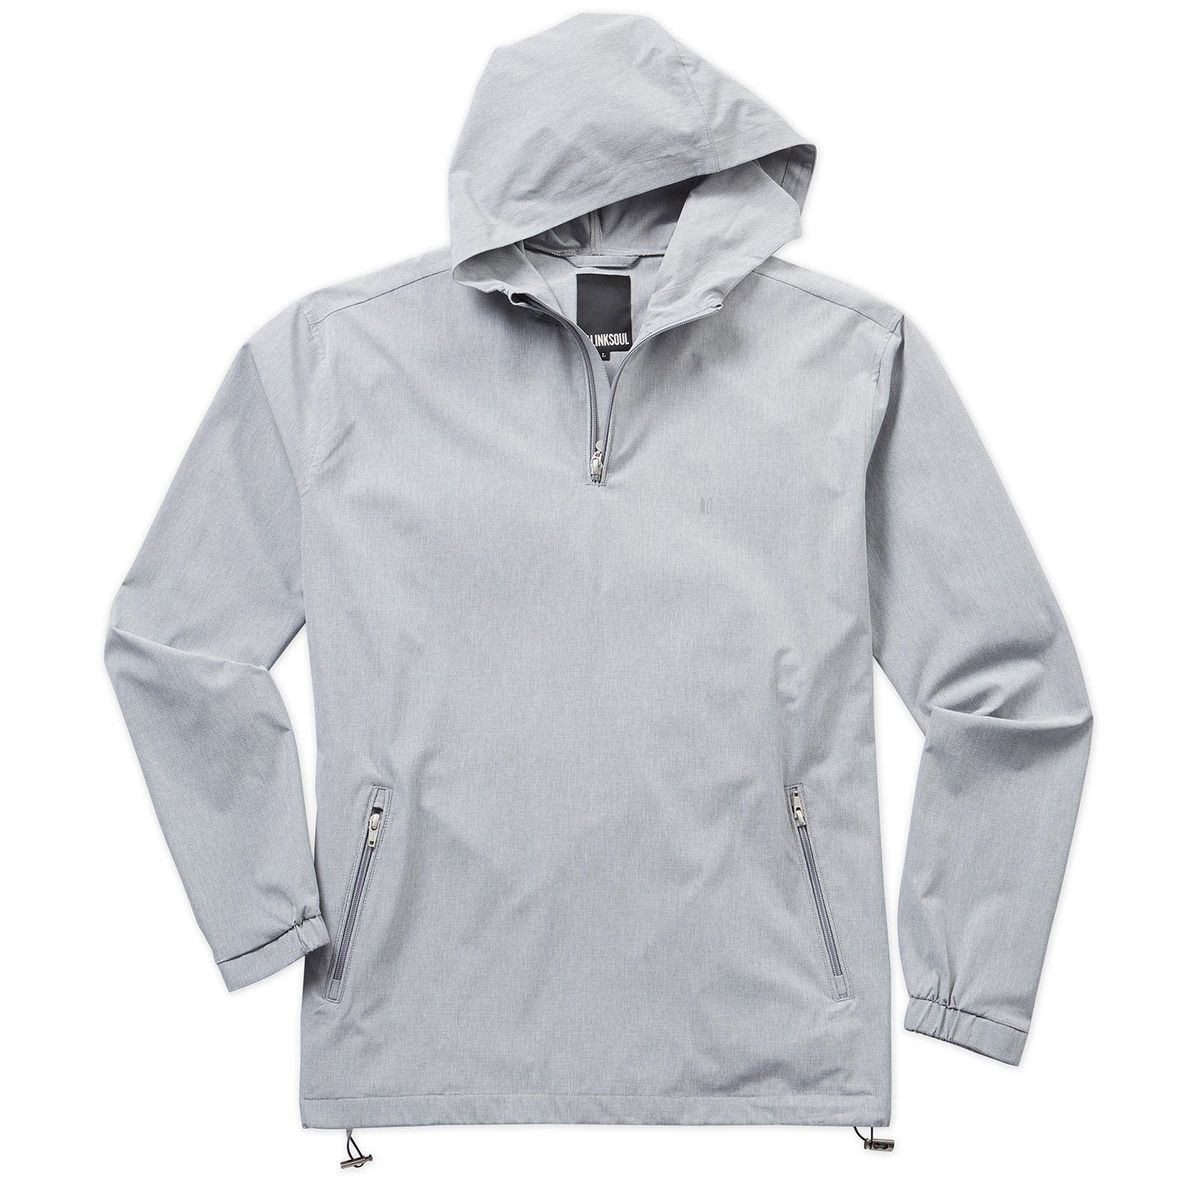 LINKSOUL BOARDWALKER AC HOODED WINDBREAKER